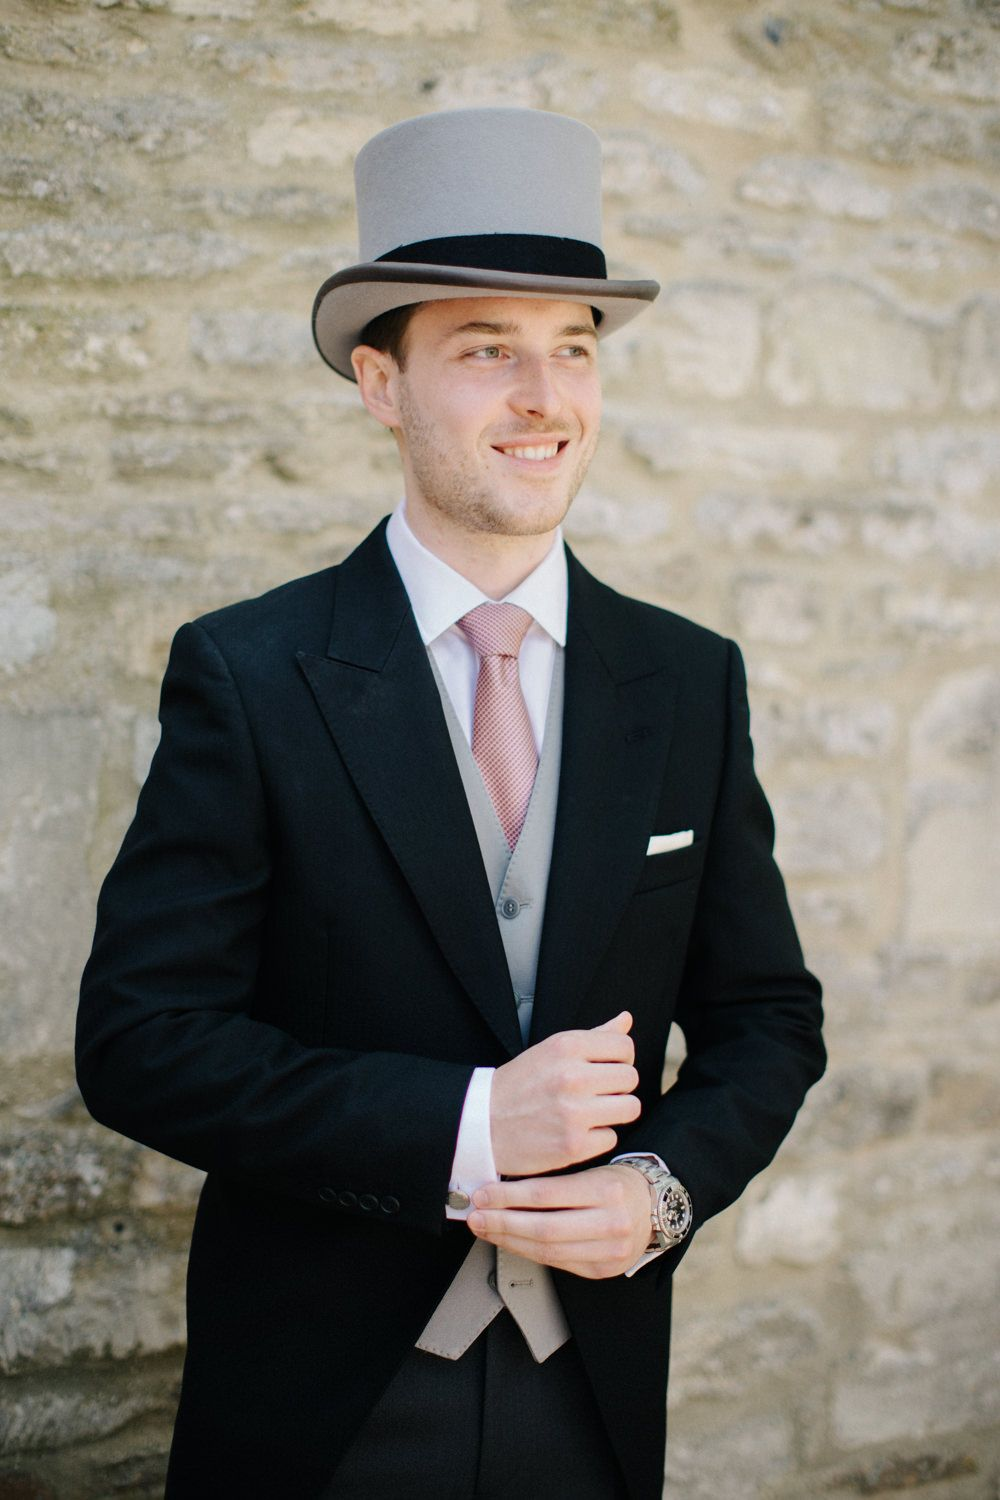 Groom On Top Hat Tails Morning Suit Outdoor Pastel Country Garden Wedding At Barnsley